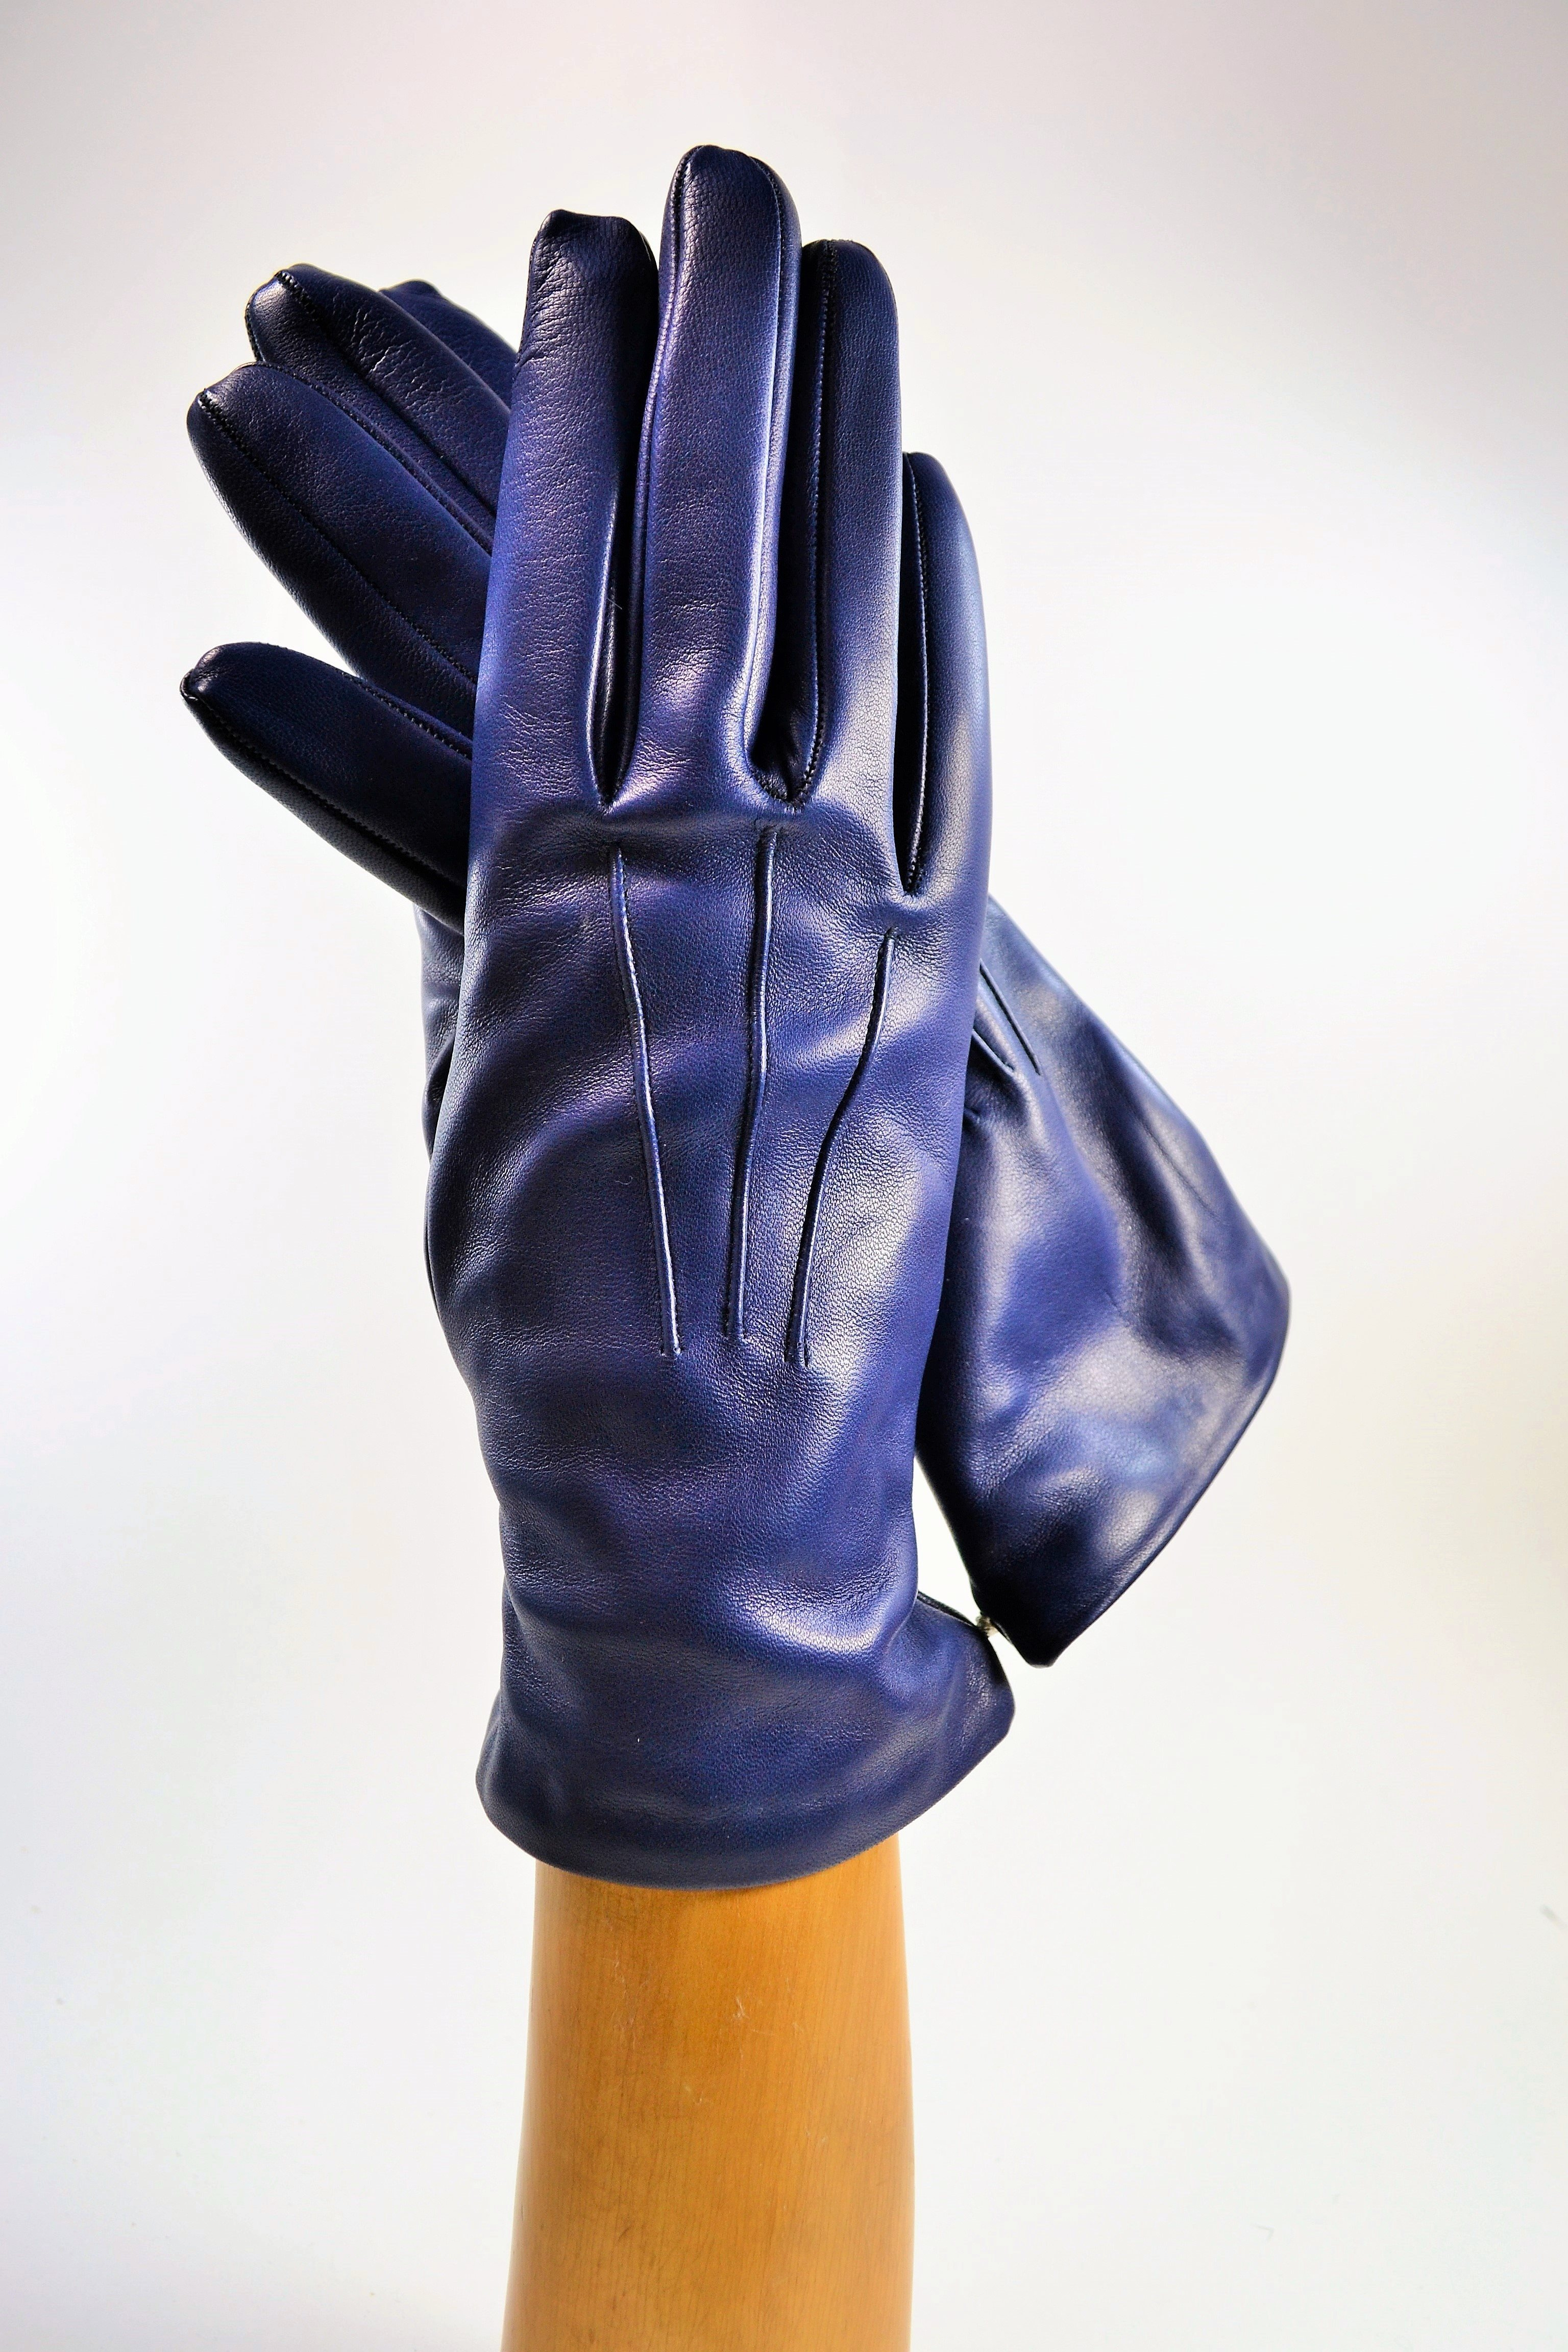 ladies nappa gloves, cashmere lined, royal blue